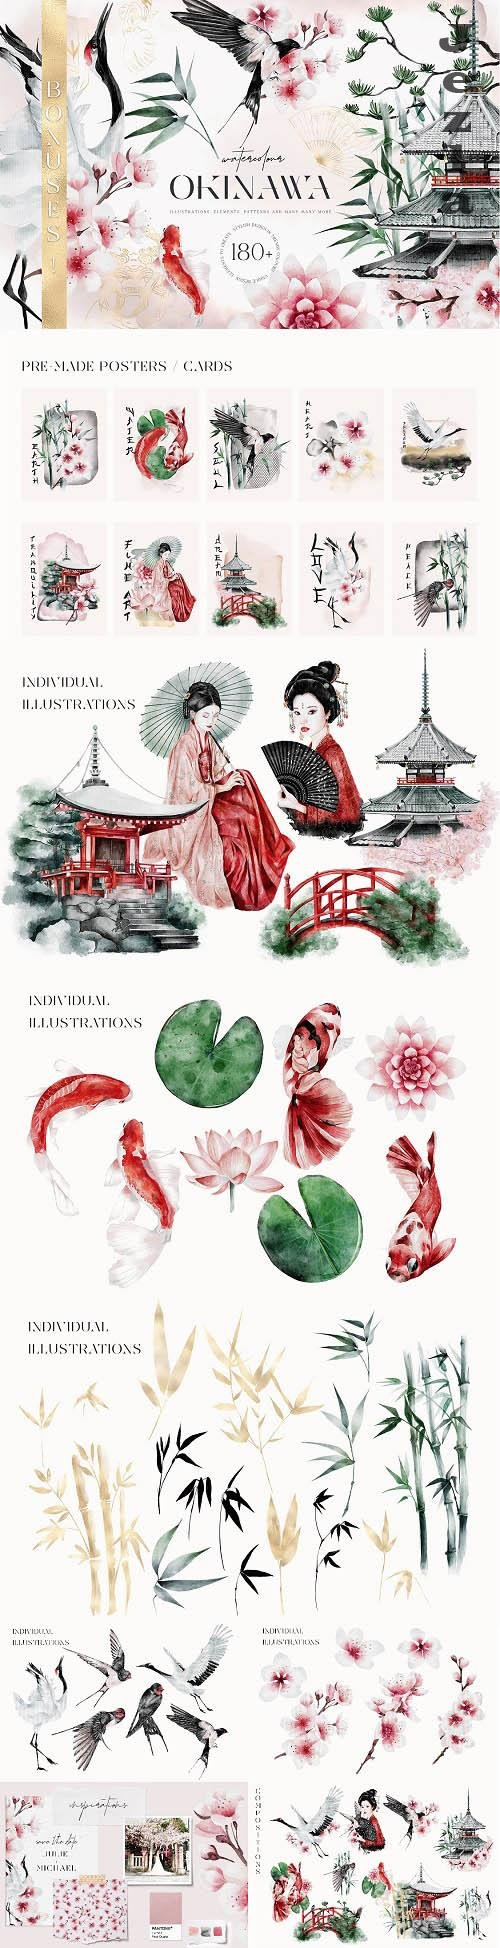 Japanese Oriental Huge Watercolor Collection and Patterns - 1464765